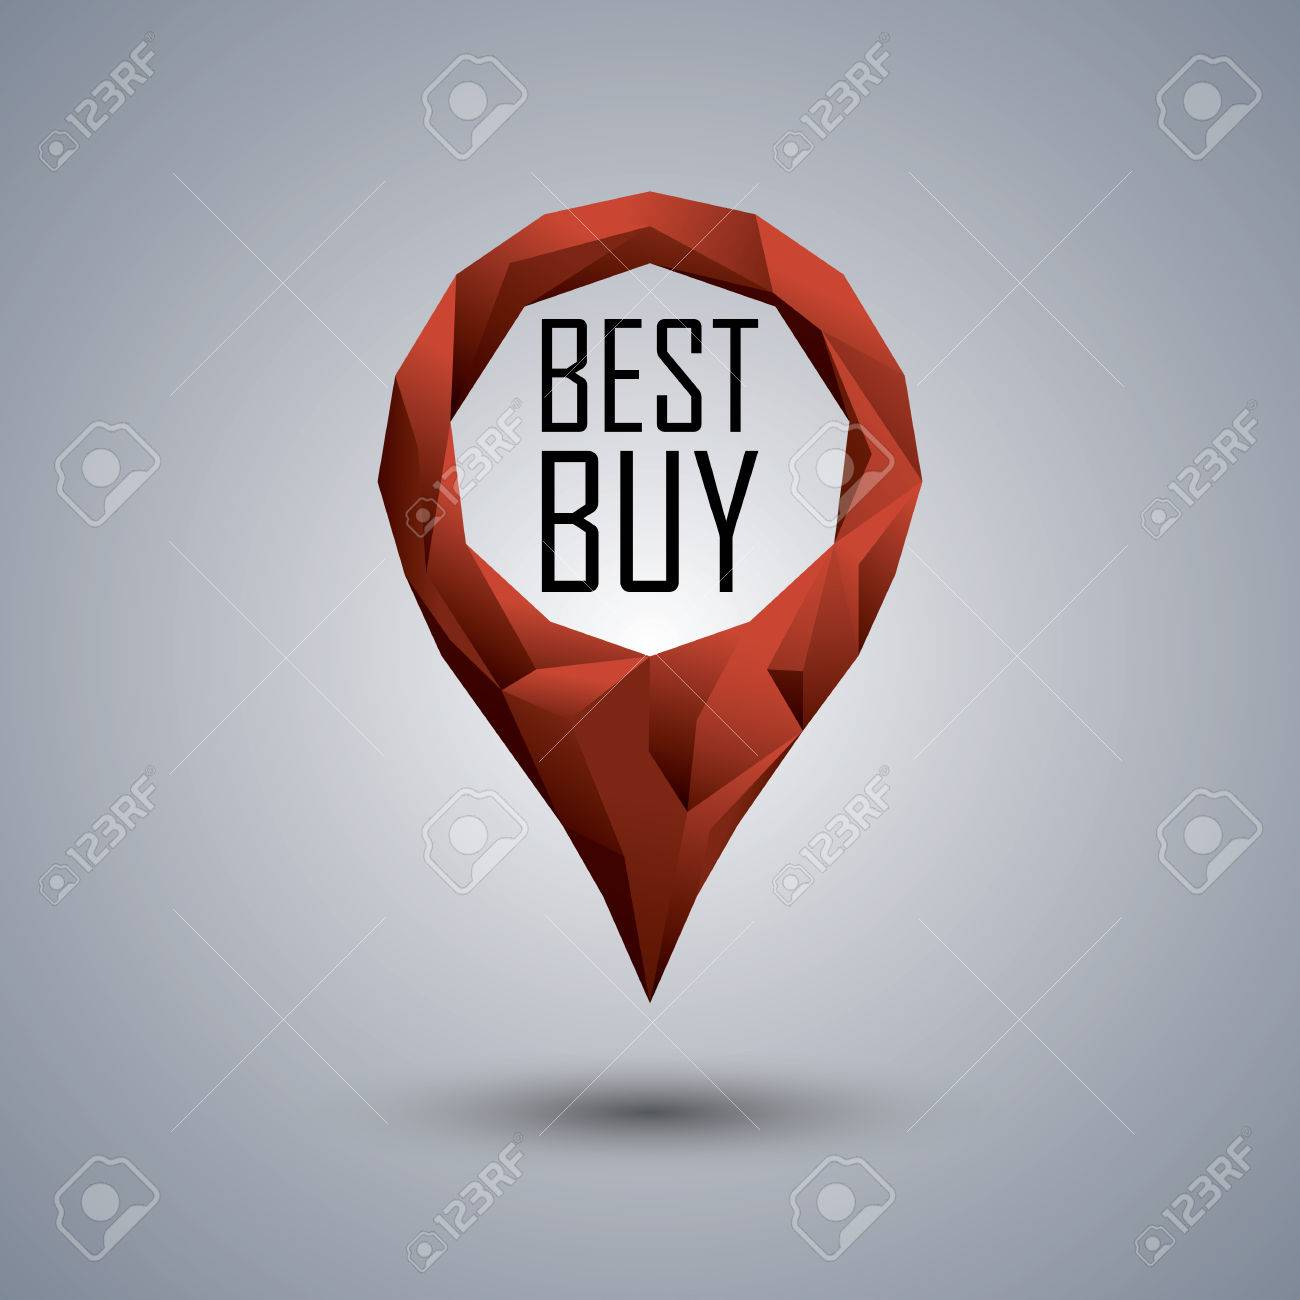 Best Buy Low Poly Icon Polygonal Location Pin With Promotional Royalty Free Cliparts Vectors And Stock Illustration Image 44826158